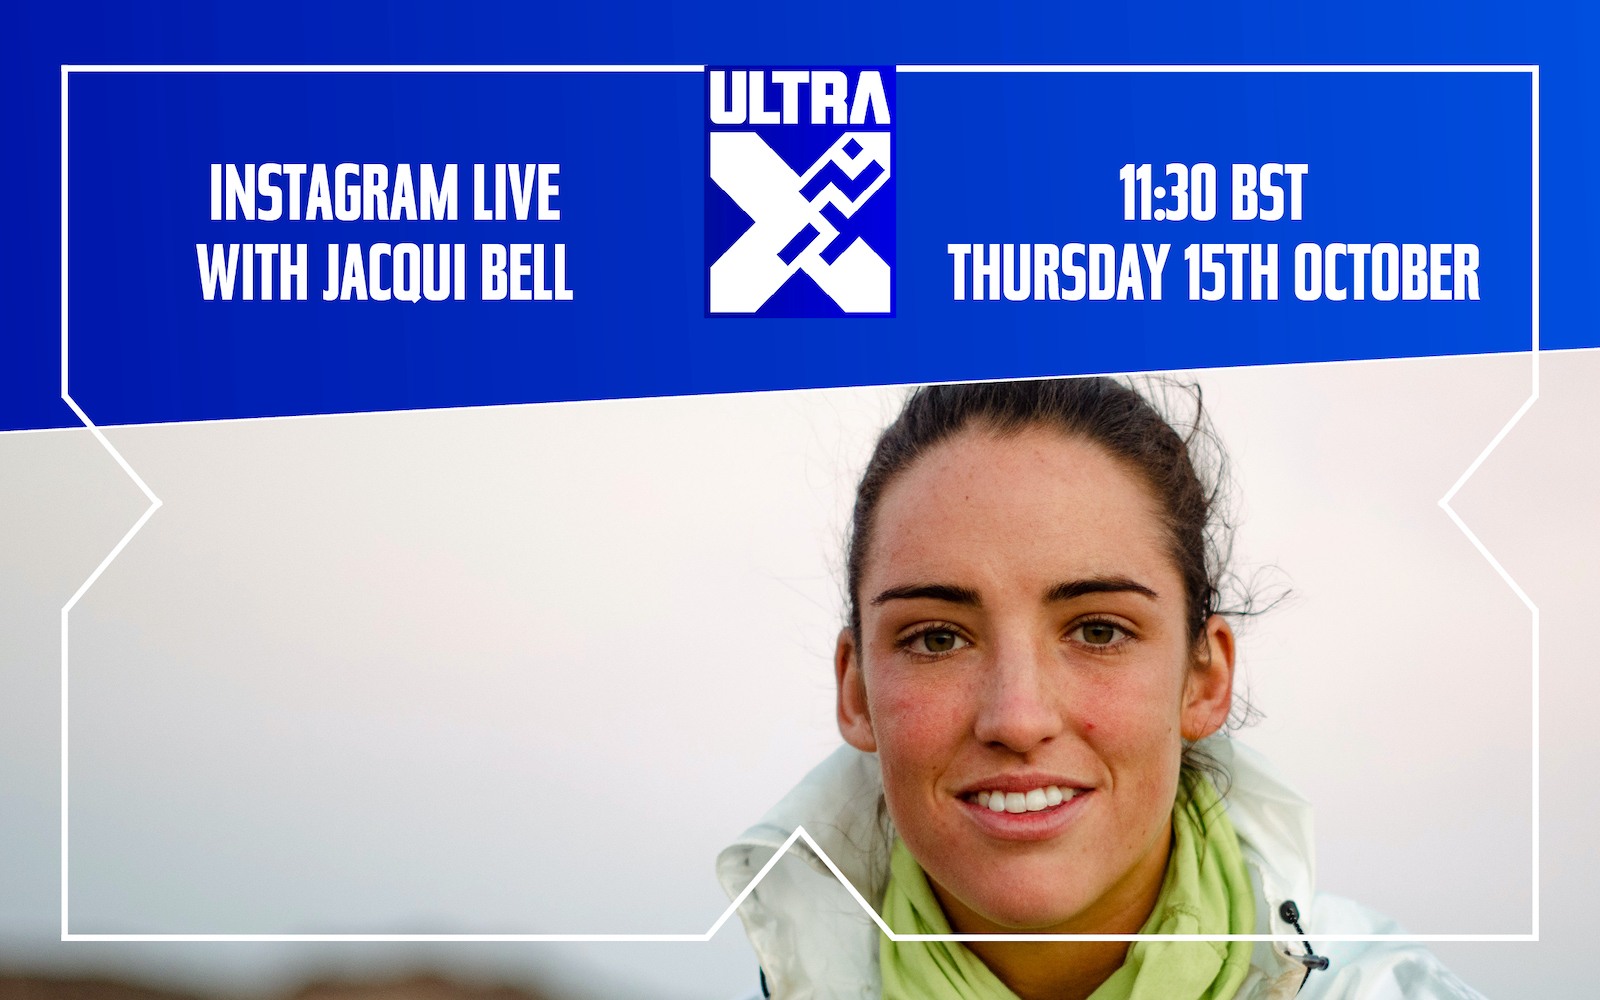 Ins­tagram Live With Ultra X Pro Ath­lete And Aus­trali­an Ultra Run­ner Jac­qui Bell